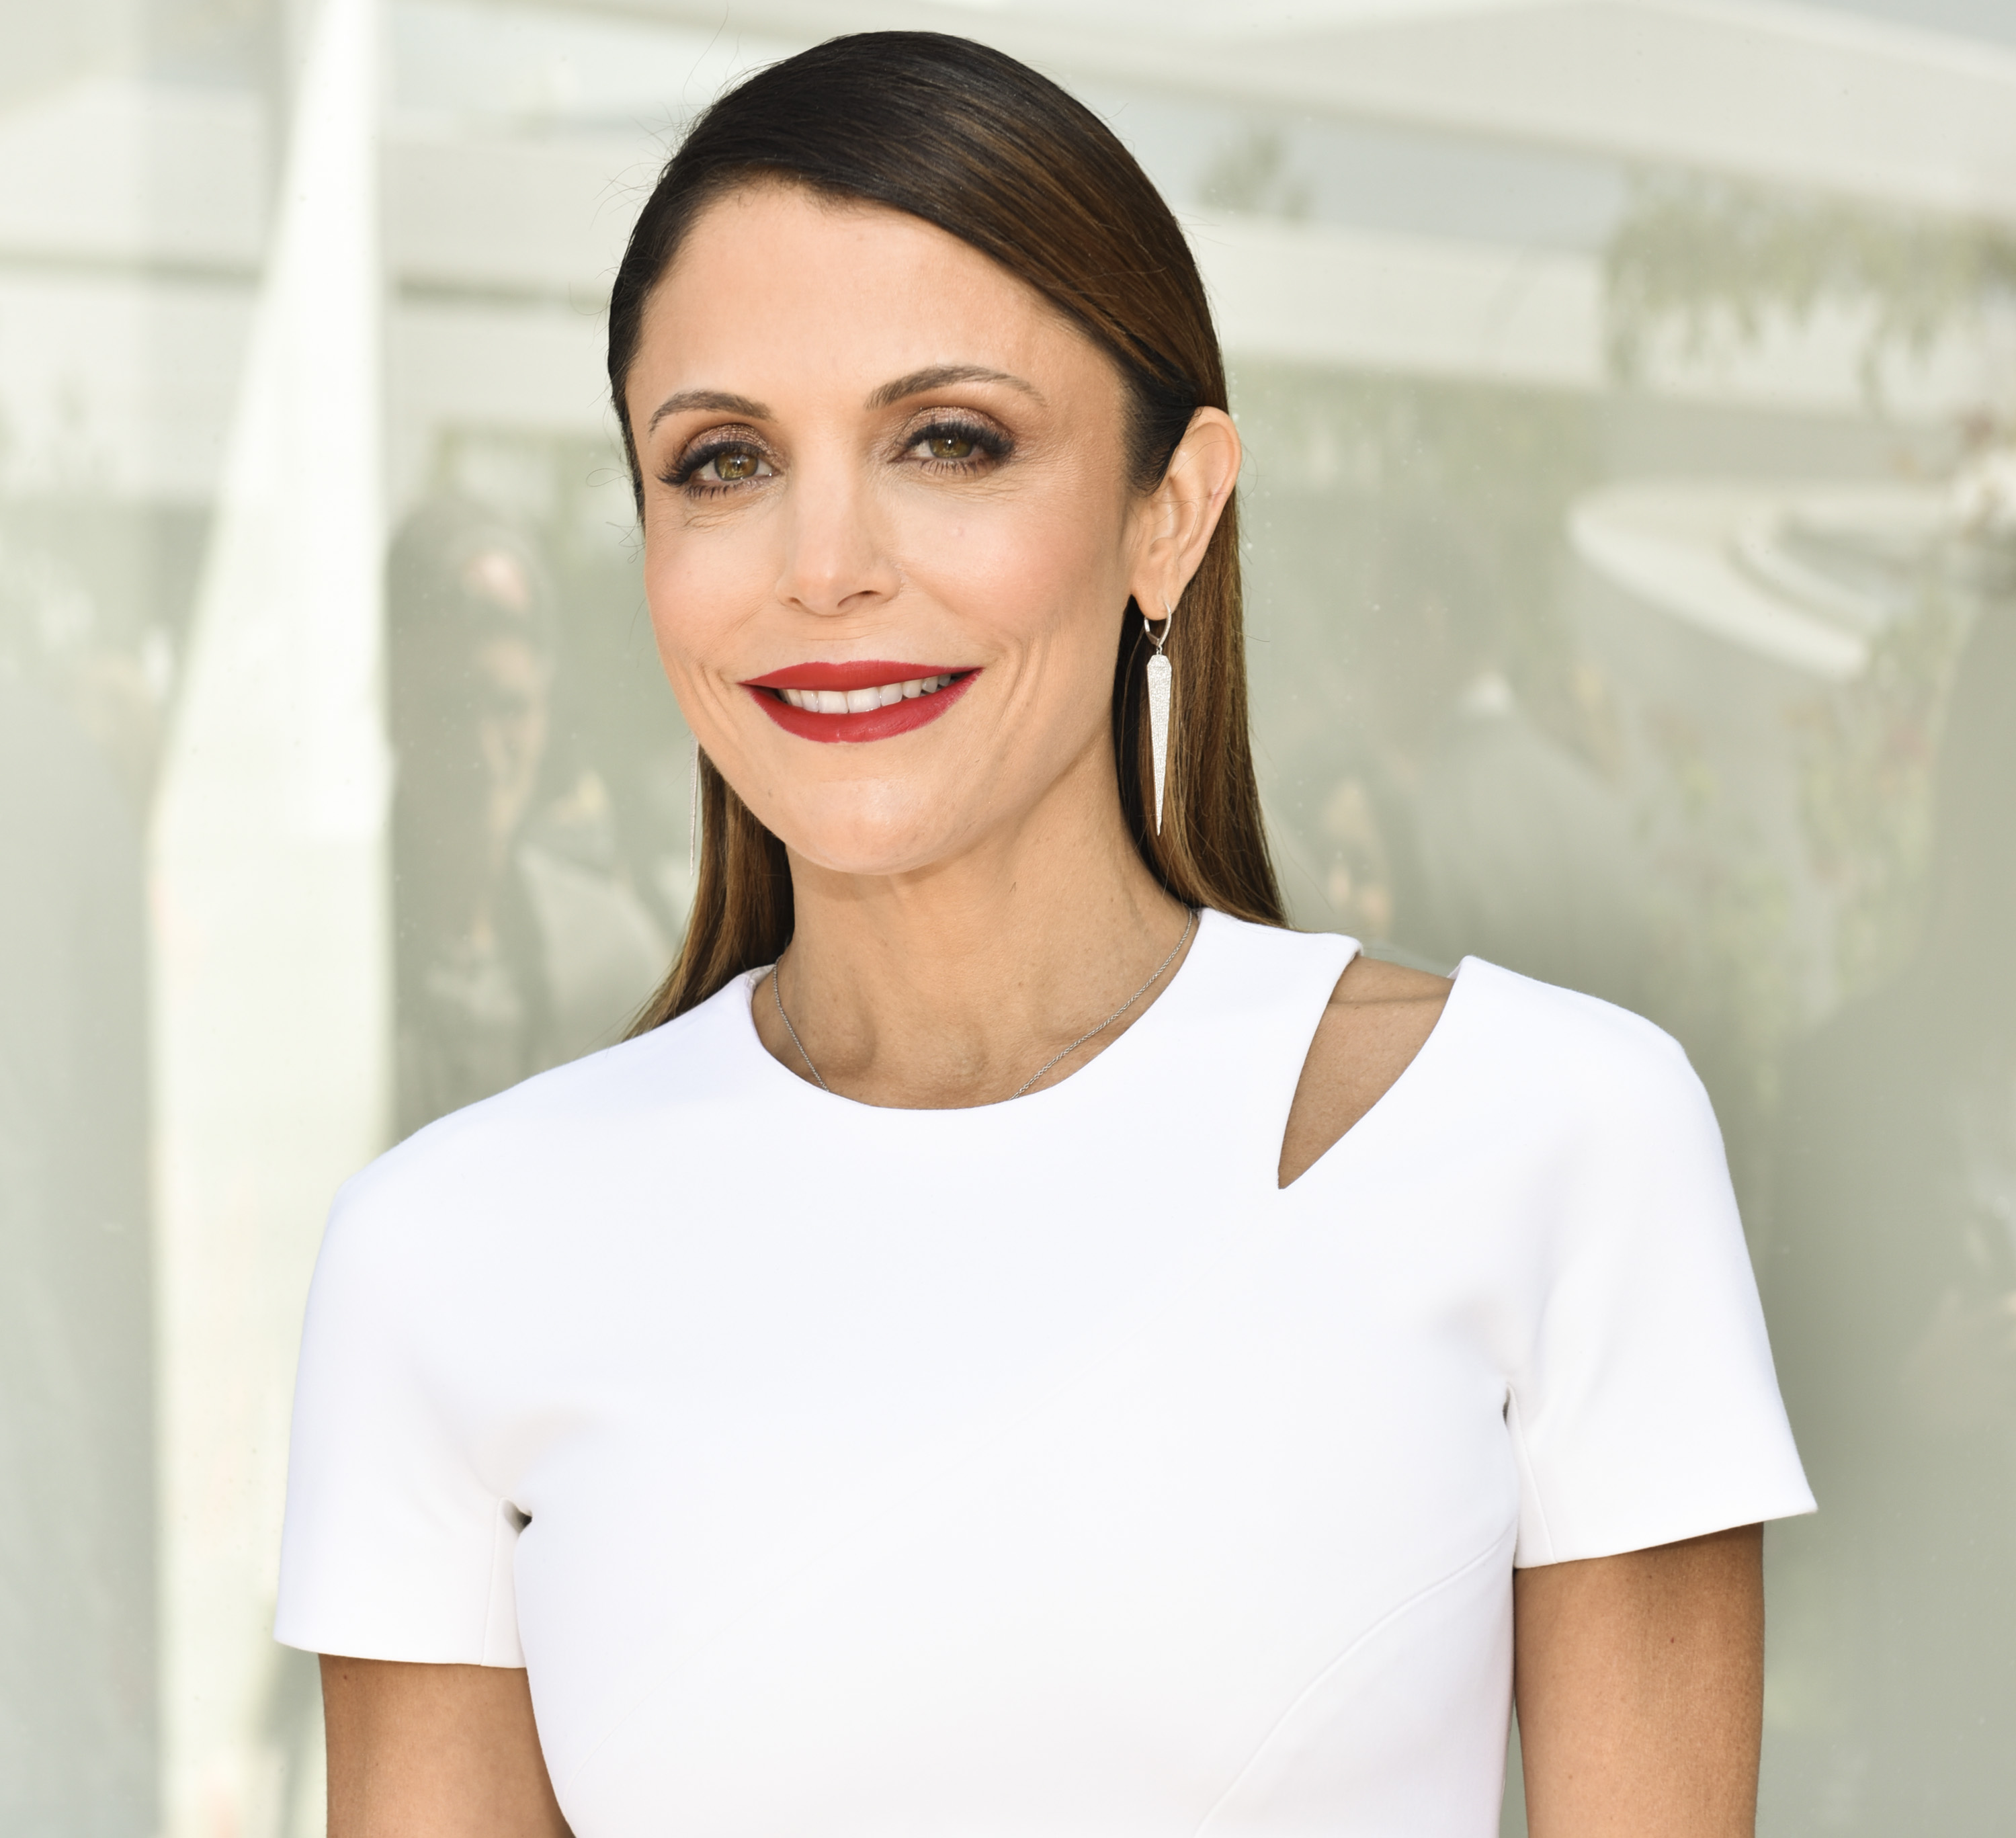 Bethenny Frankel Plastic Surgery: The RHONY Star Has Admitted to Botox